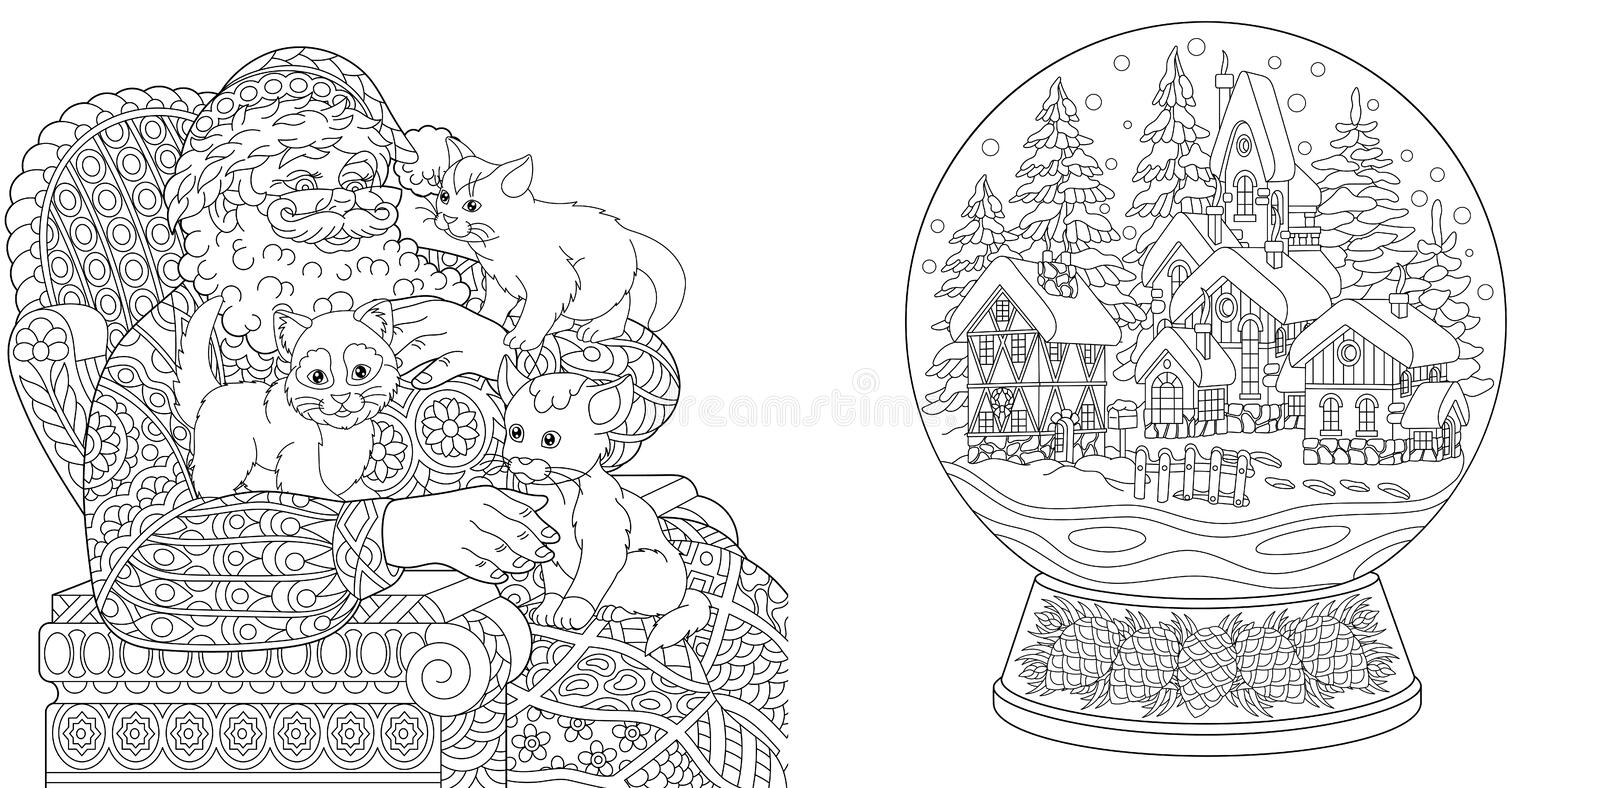 Coloring Pages. Coloring Book for adults. Colouring pictures with Santa Claus and magic snow ball. Antistress freehand sketch royalty free stock images